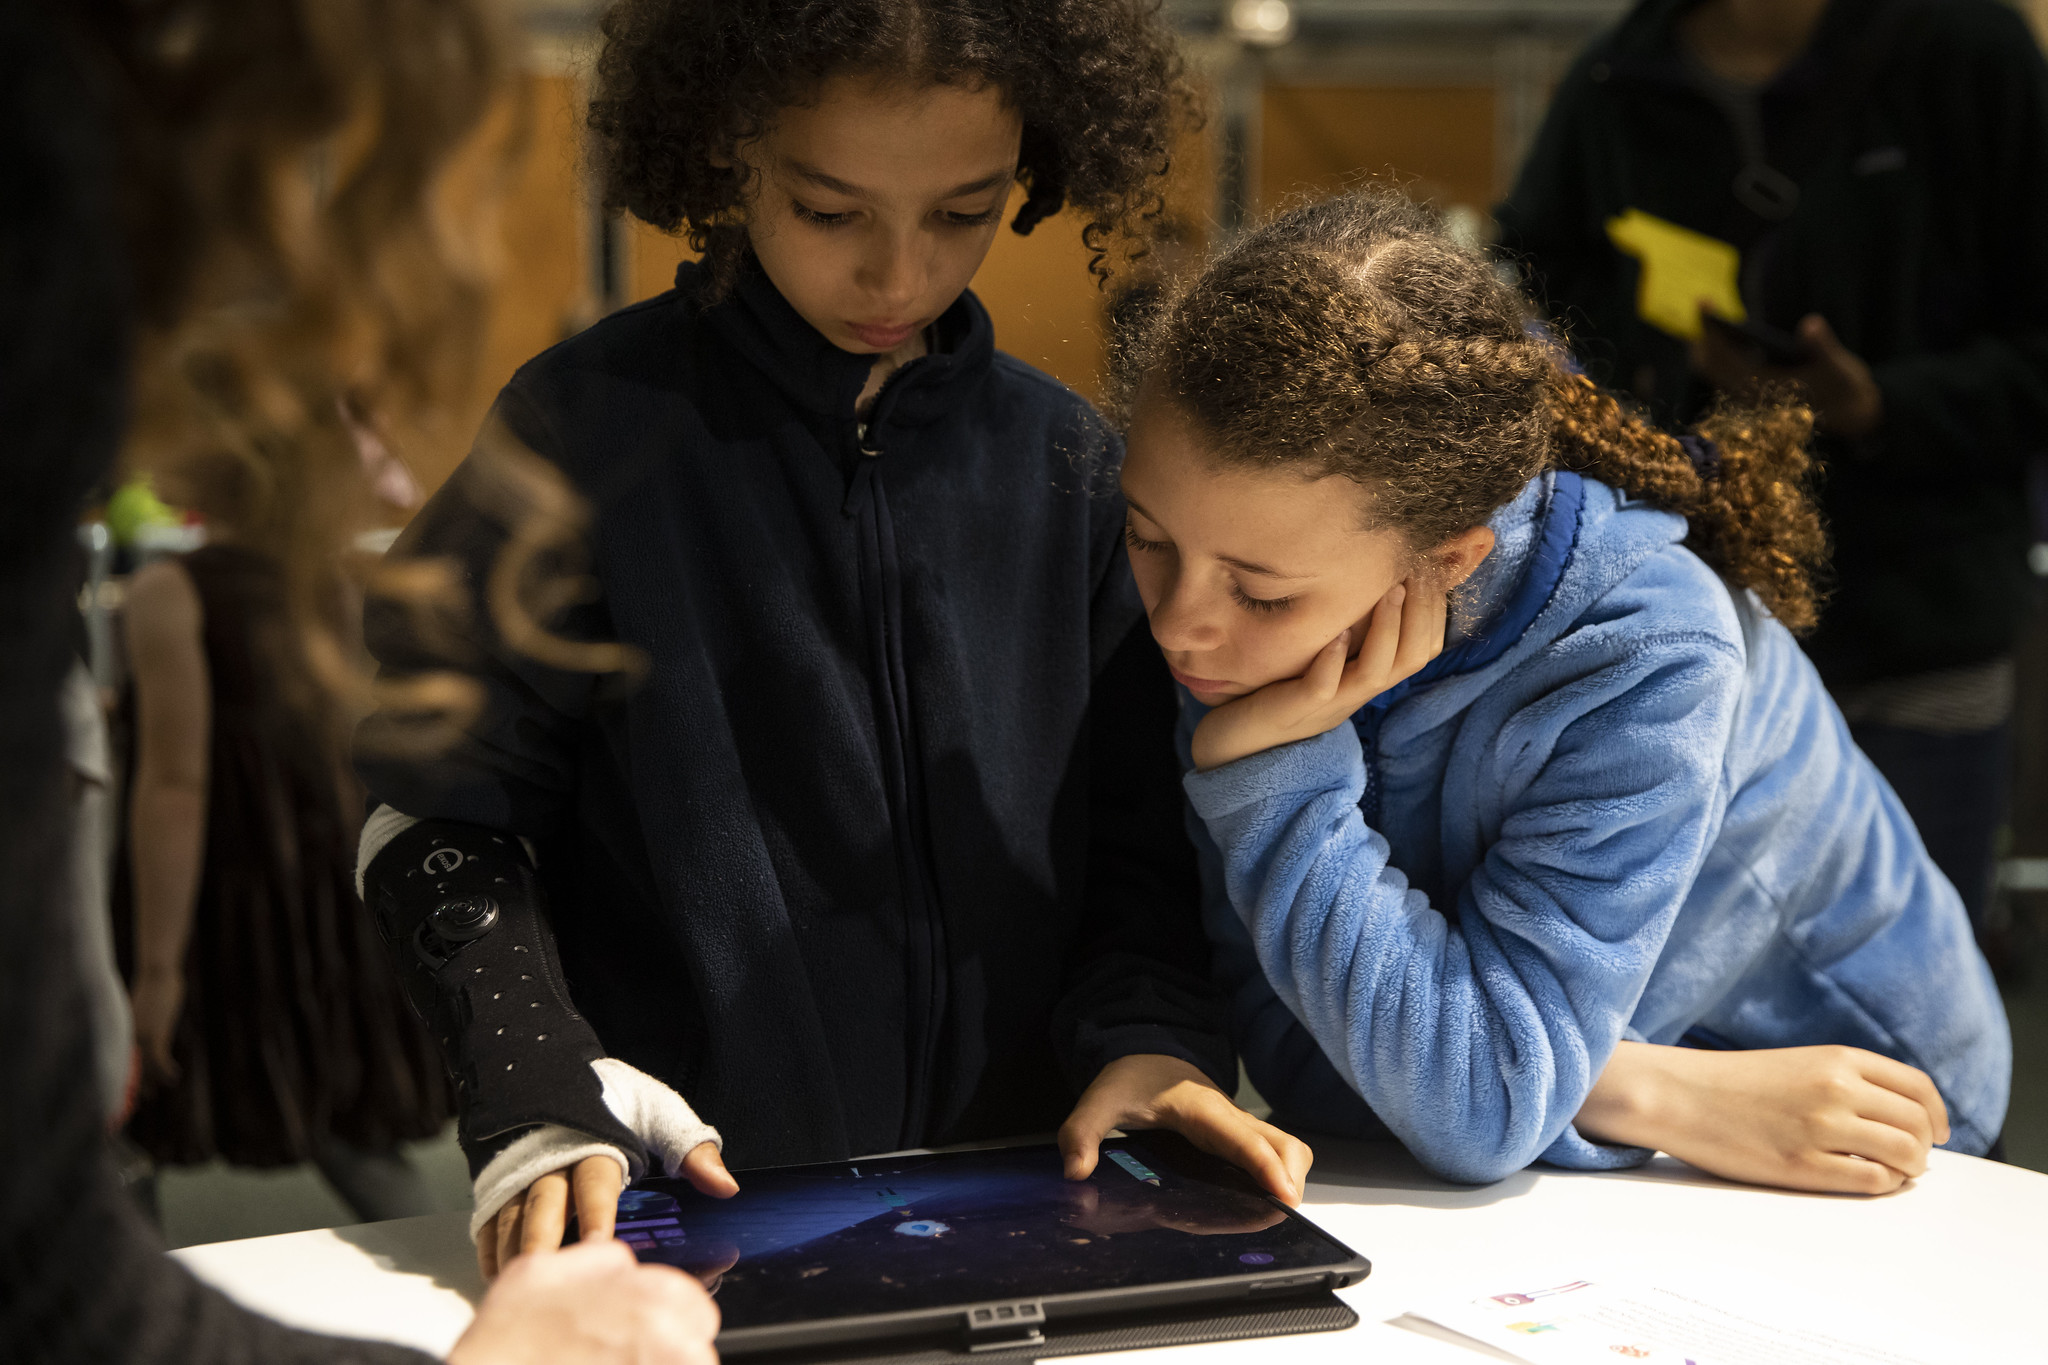 Two students looking at an iPad